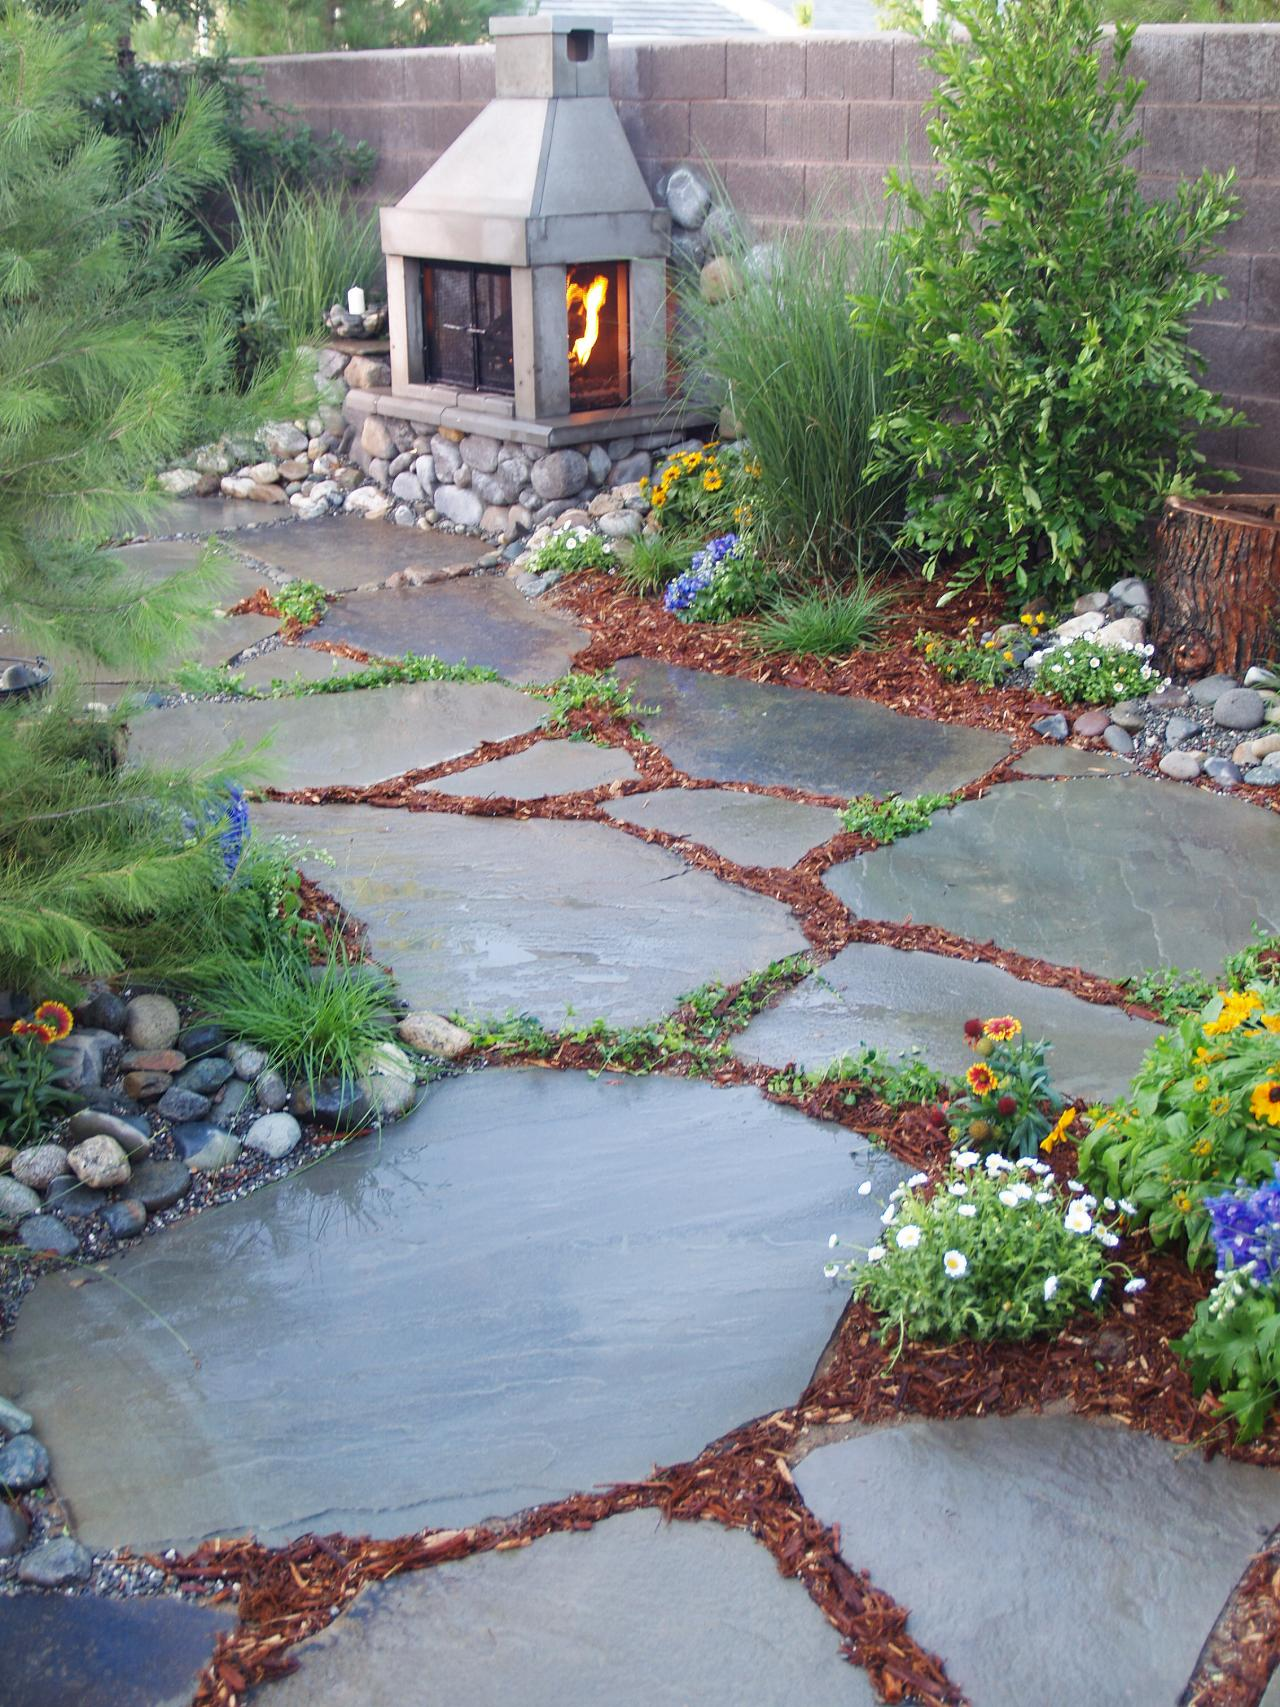 66 Fire Pit and Outdoor Fireplace Ideas | DIY Network Blog: Made + Easy Backyard Walkway Ideas on cheap backyard ideas, backyard court ideas, small back yard landscaping ideas, backyard umbrella ideas, backyard steps ideas, backyard deck ideas, backyard bathroom ideas, backyard river ideas, backyard concrete ideas, backyard patio ideas, backyard landscaping ideas, backyard brick ideas, backyard block ideas, backyard water ideas, backyard entryway ideas, backyard wood ideas, backyard platform ideas, backyard pier ideas, backyard garden walkways, backyard passage ideas,